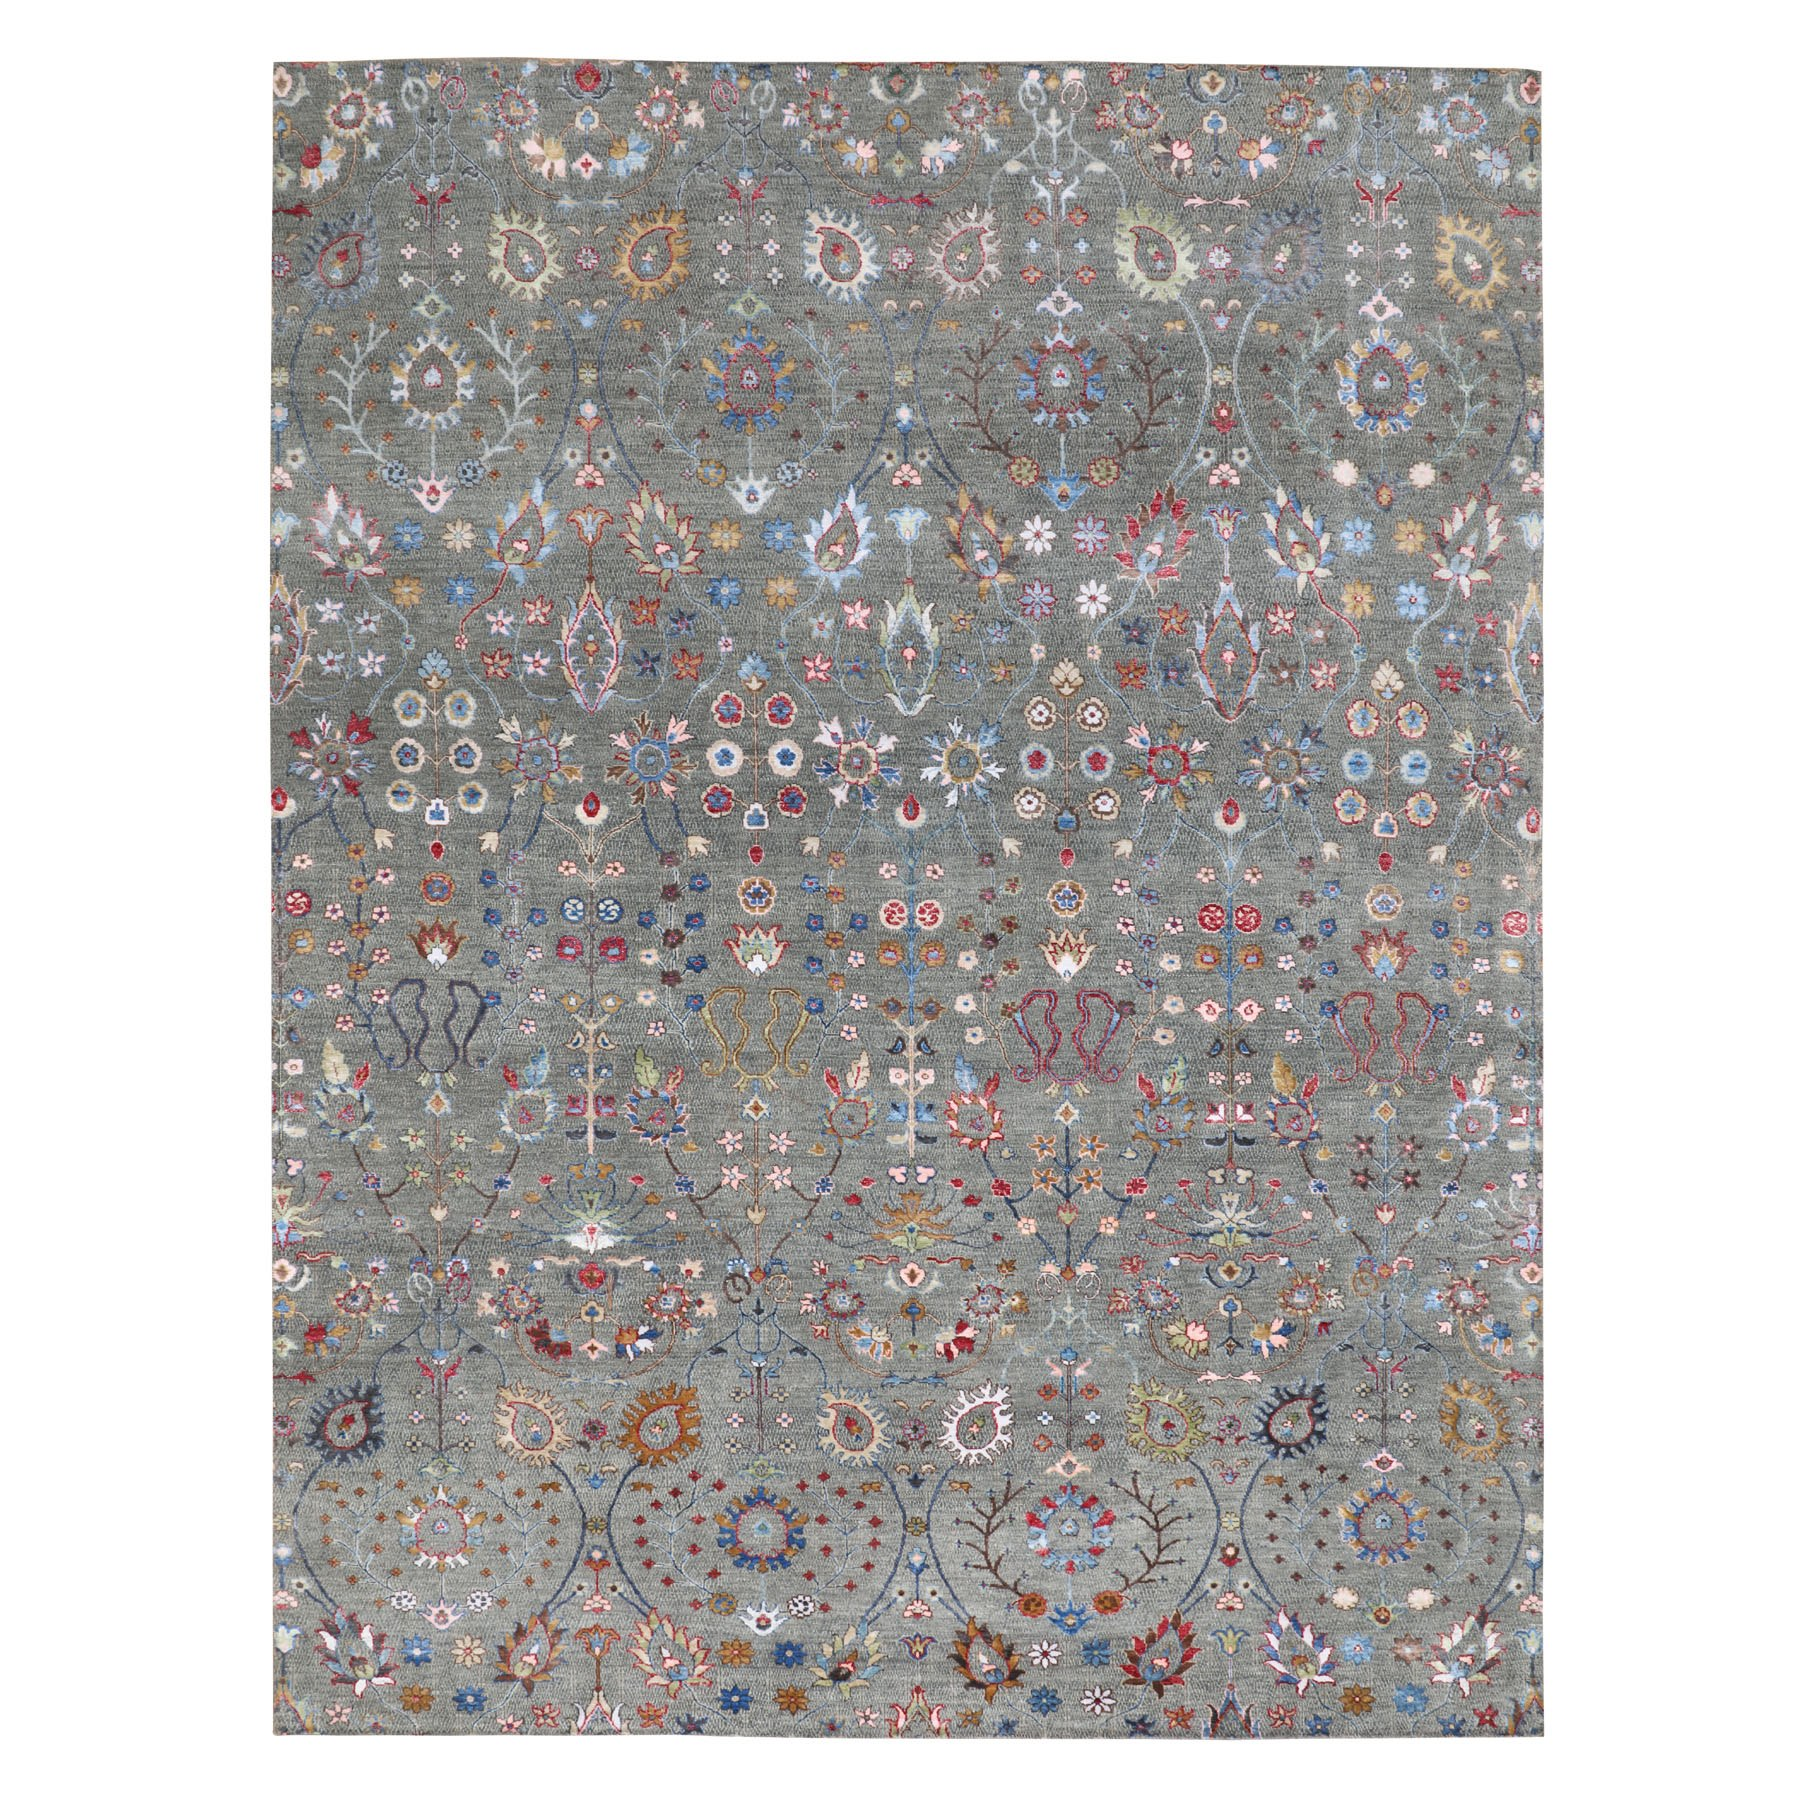 9'x12' Colorful Wool And Silk All Over Design Hand Woven Oriental Rug